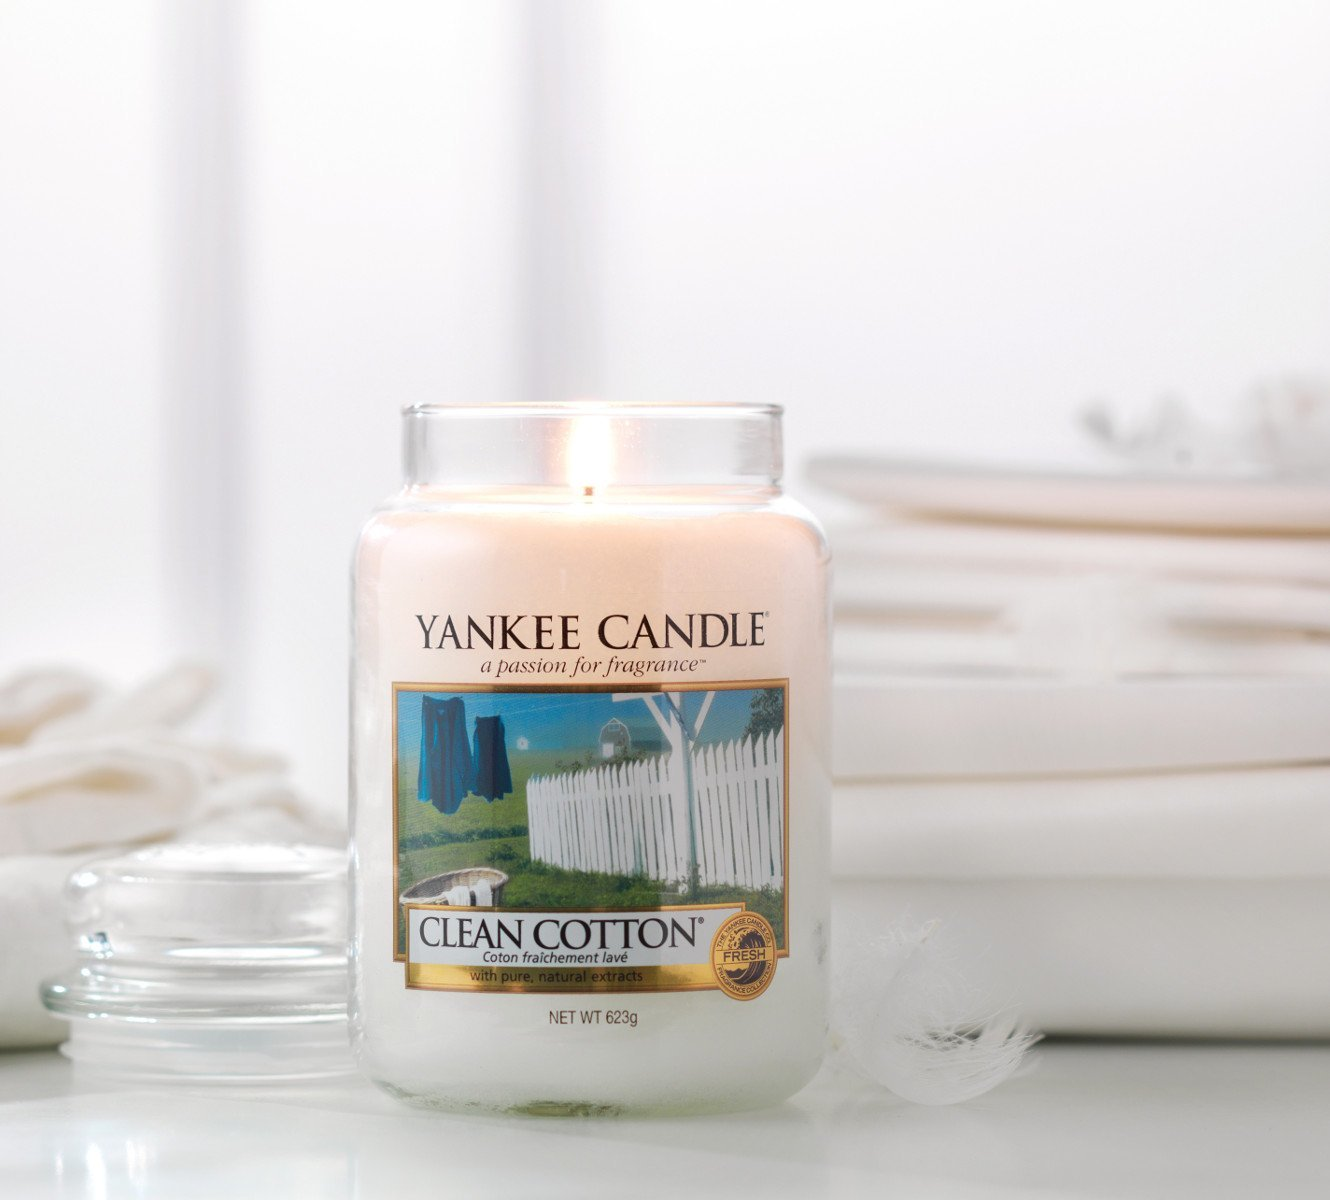 CLEAN COTTON -Yankee Candle- Candela Sampler